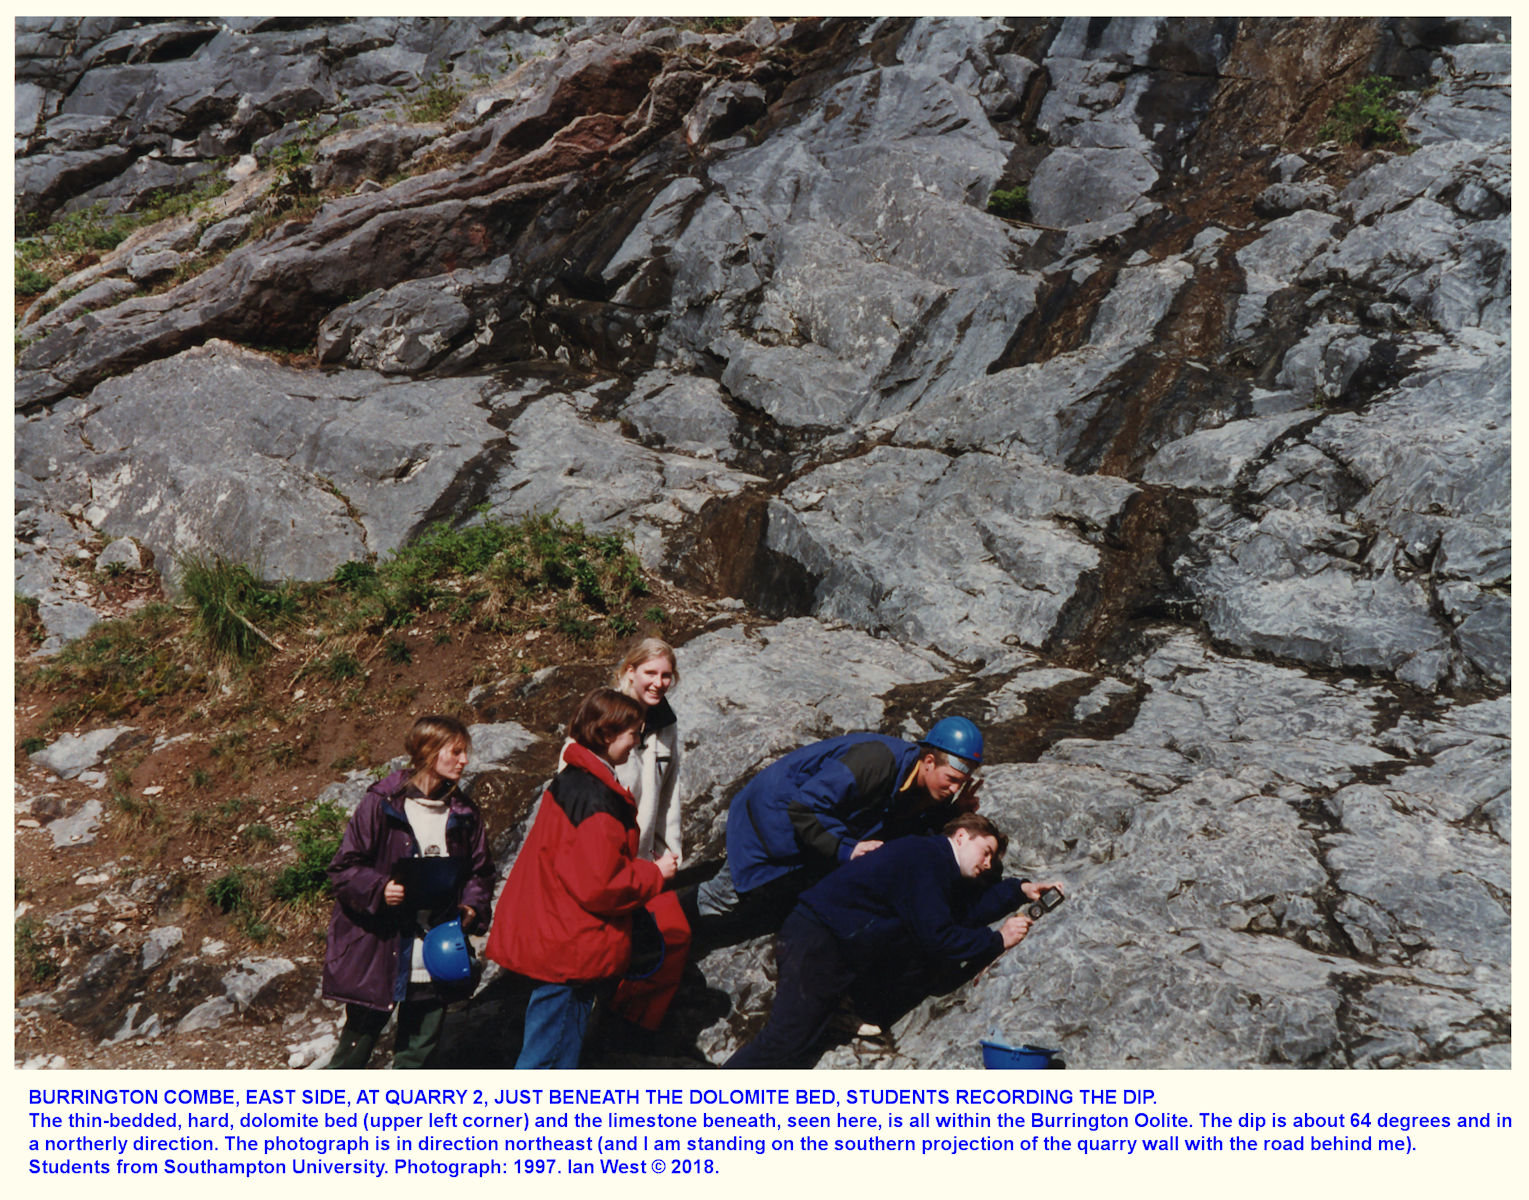 Students taking dip readings just stratigraphically below the dolomite bed, or rib, in the Burrington Oolite, Burrington Combe, 1997